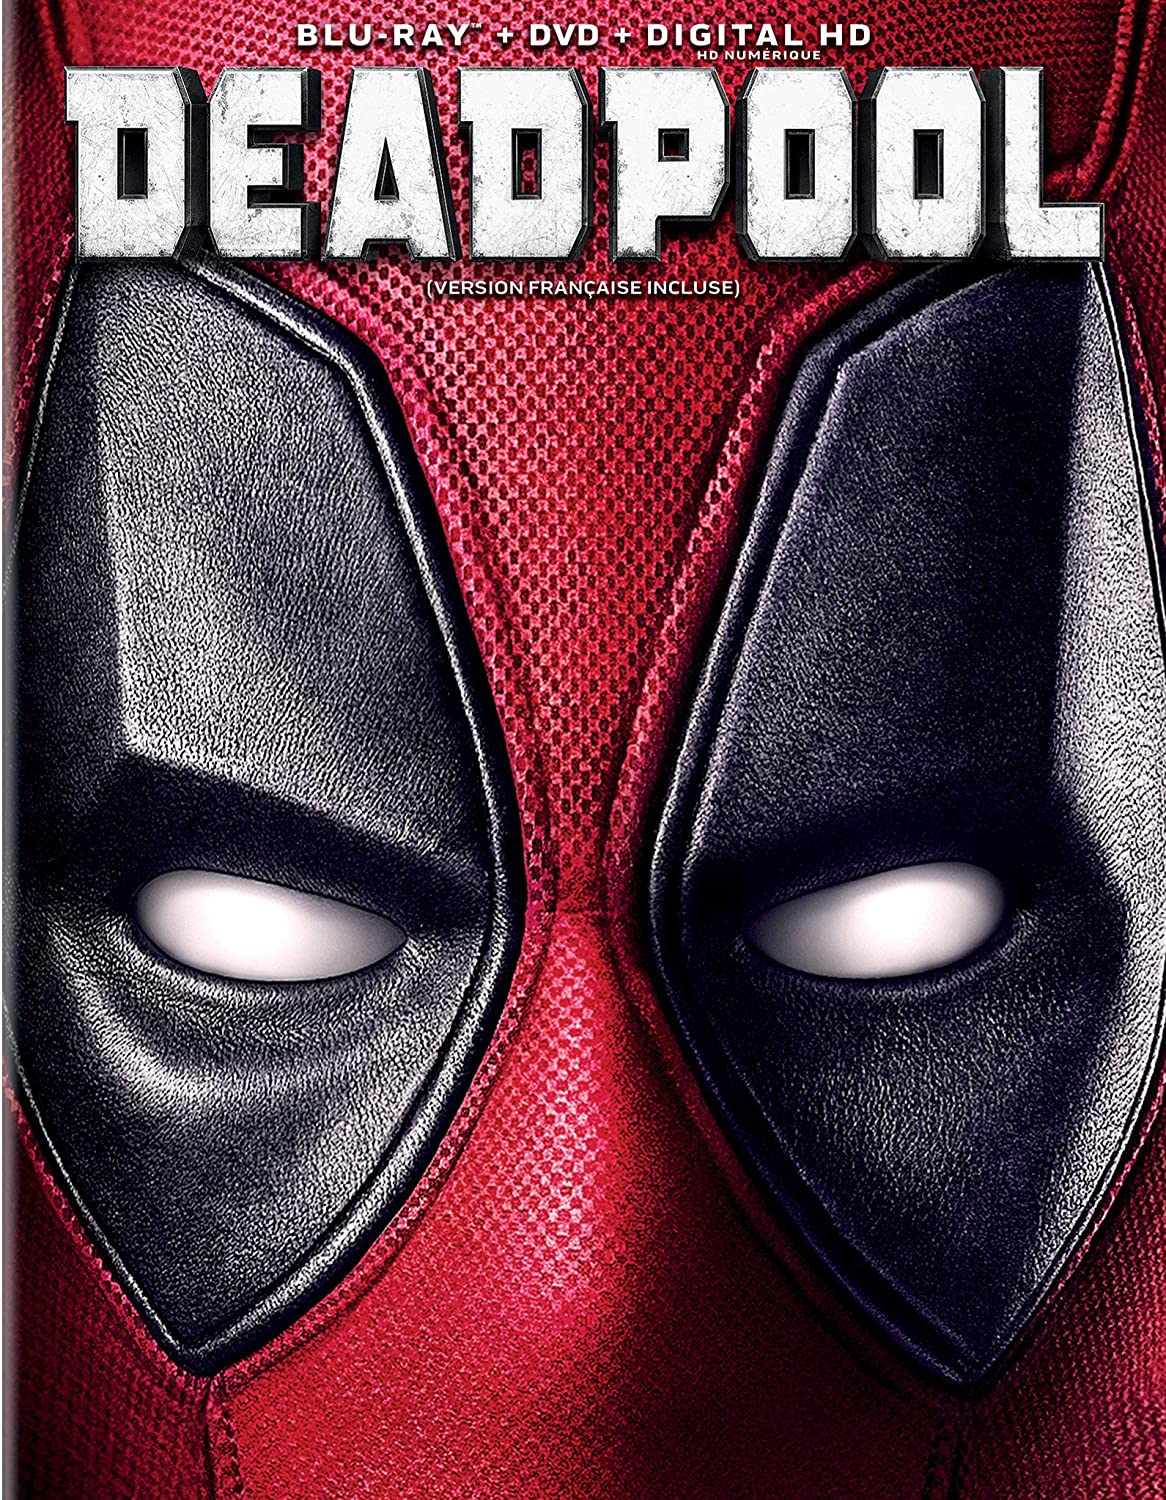 Deadpool [Blu-ray + Digital Copy] (Bilingual) Ryan Reynolds Morena Baccarin Karan Soni Ed Skrein